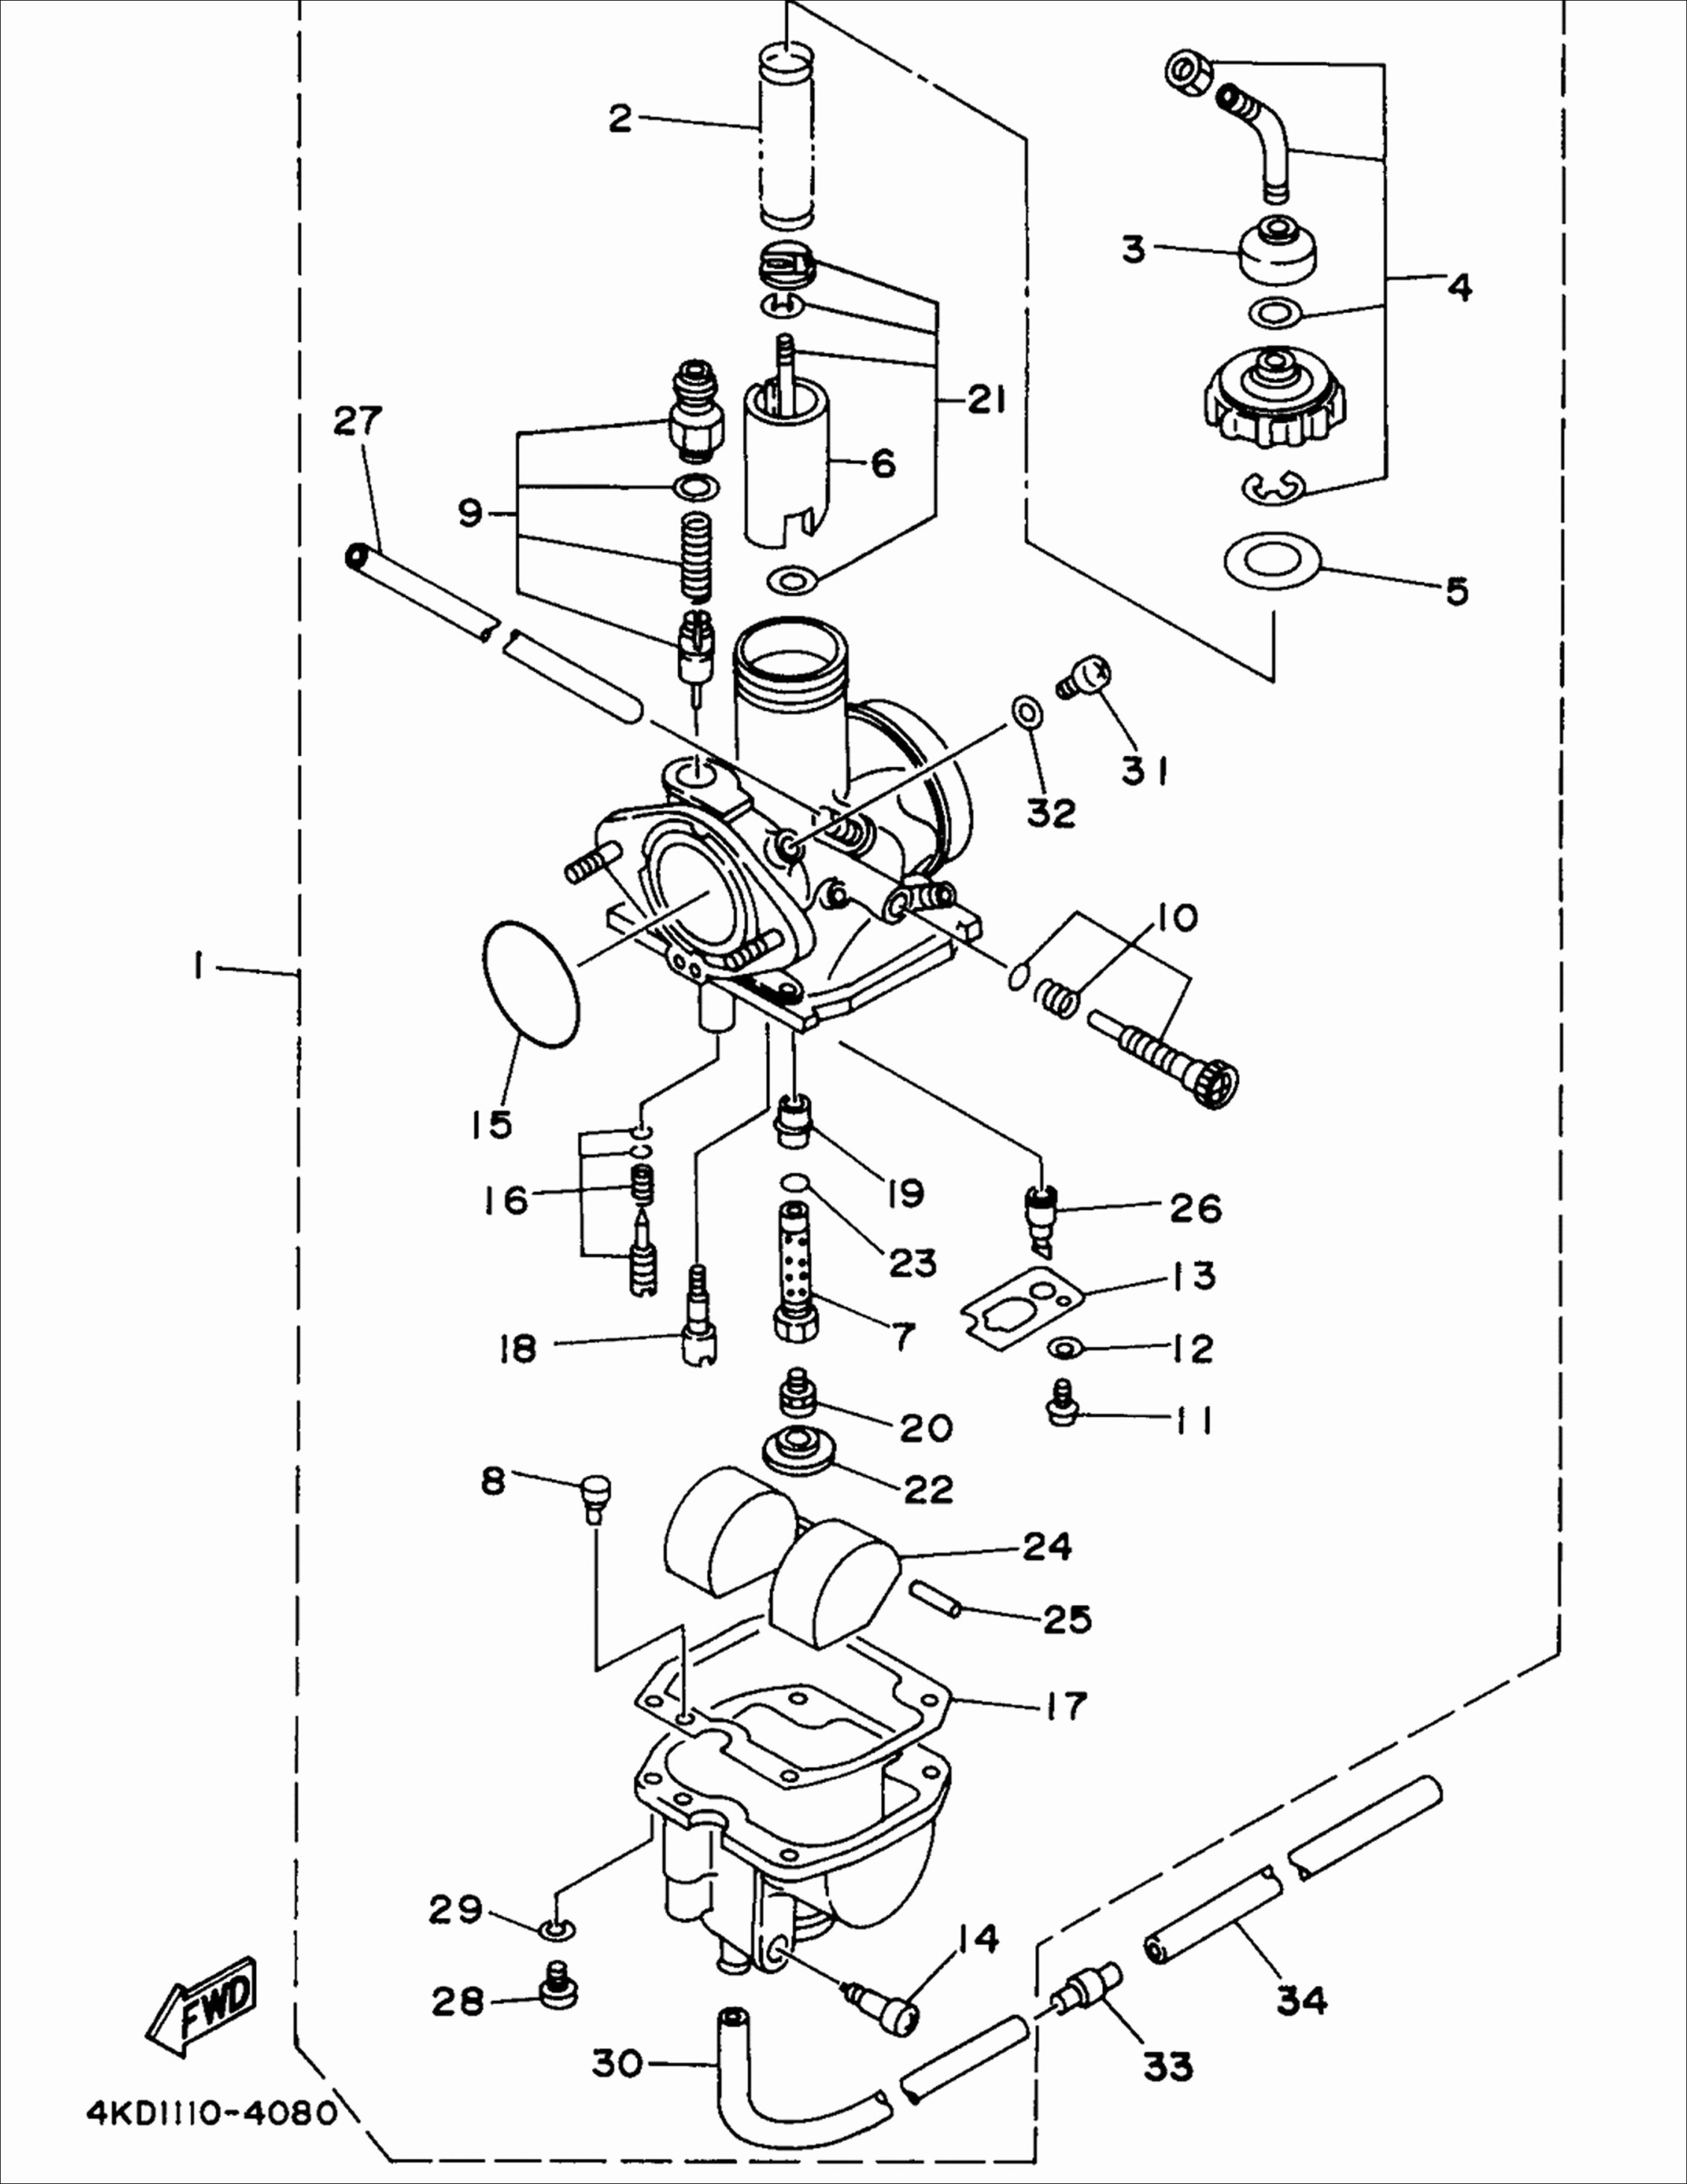 Ford Explorer 4 0 Ohv Firing Order